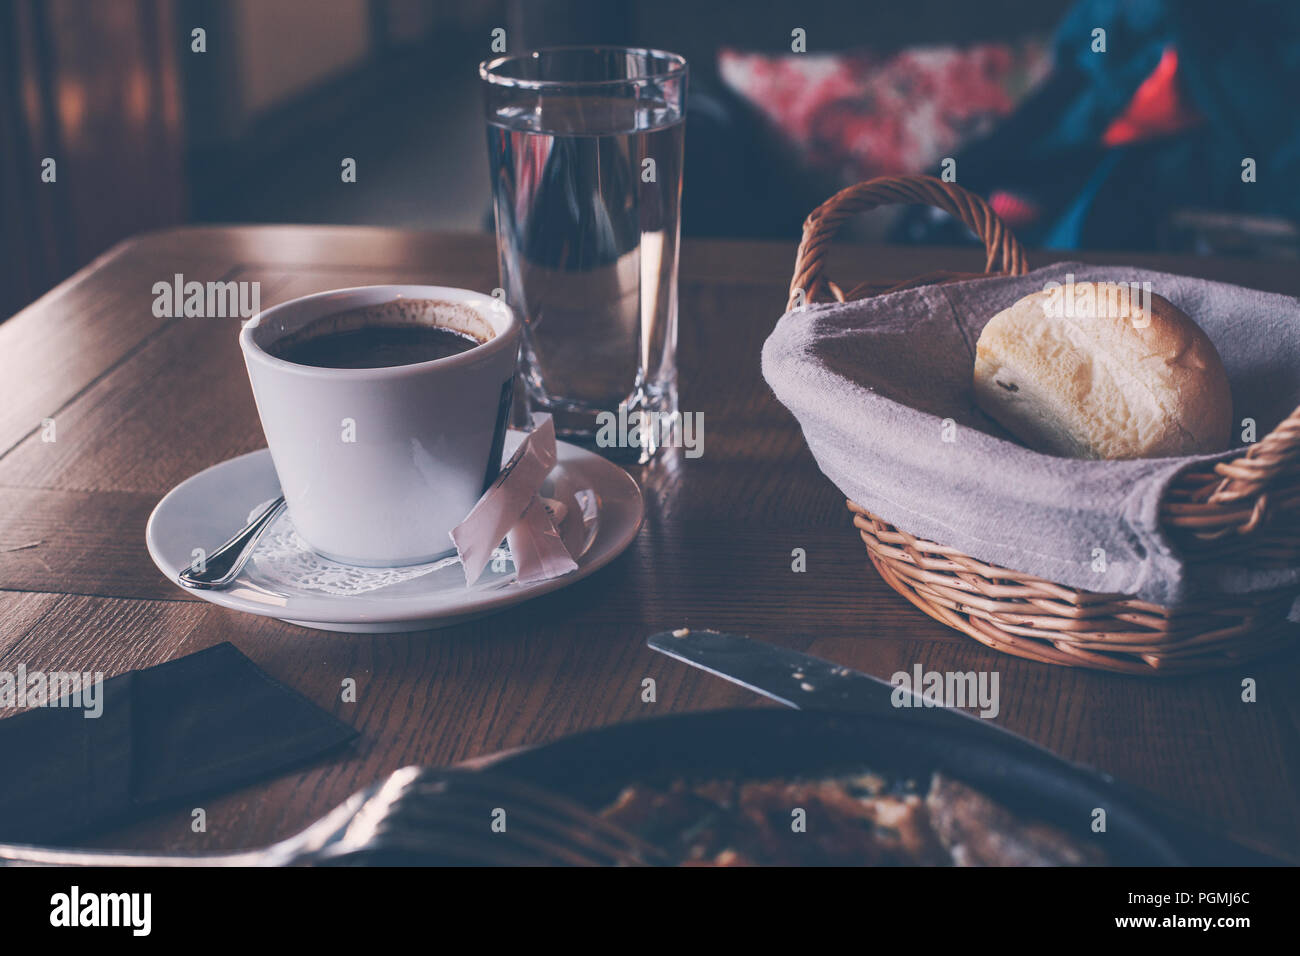 A Cup Of Coffee And Breakfast In A Cozy Retro Style Cafe